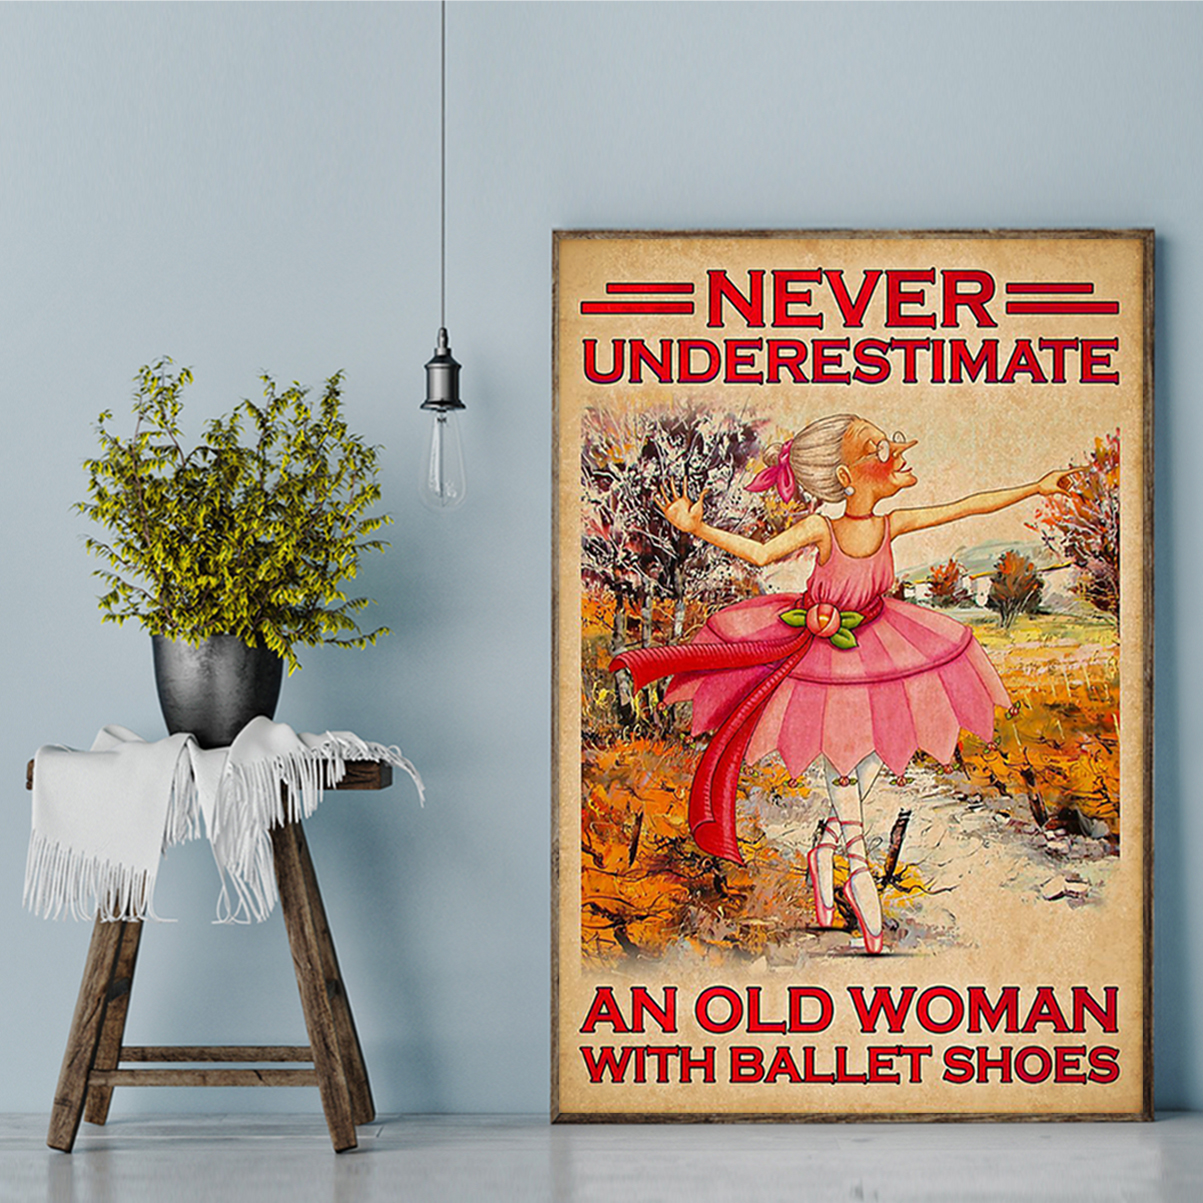 Never underestimate an old woman with ballet shoes poster A2